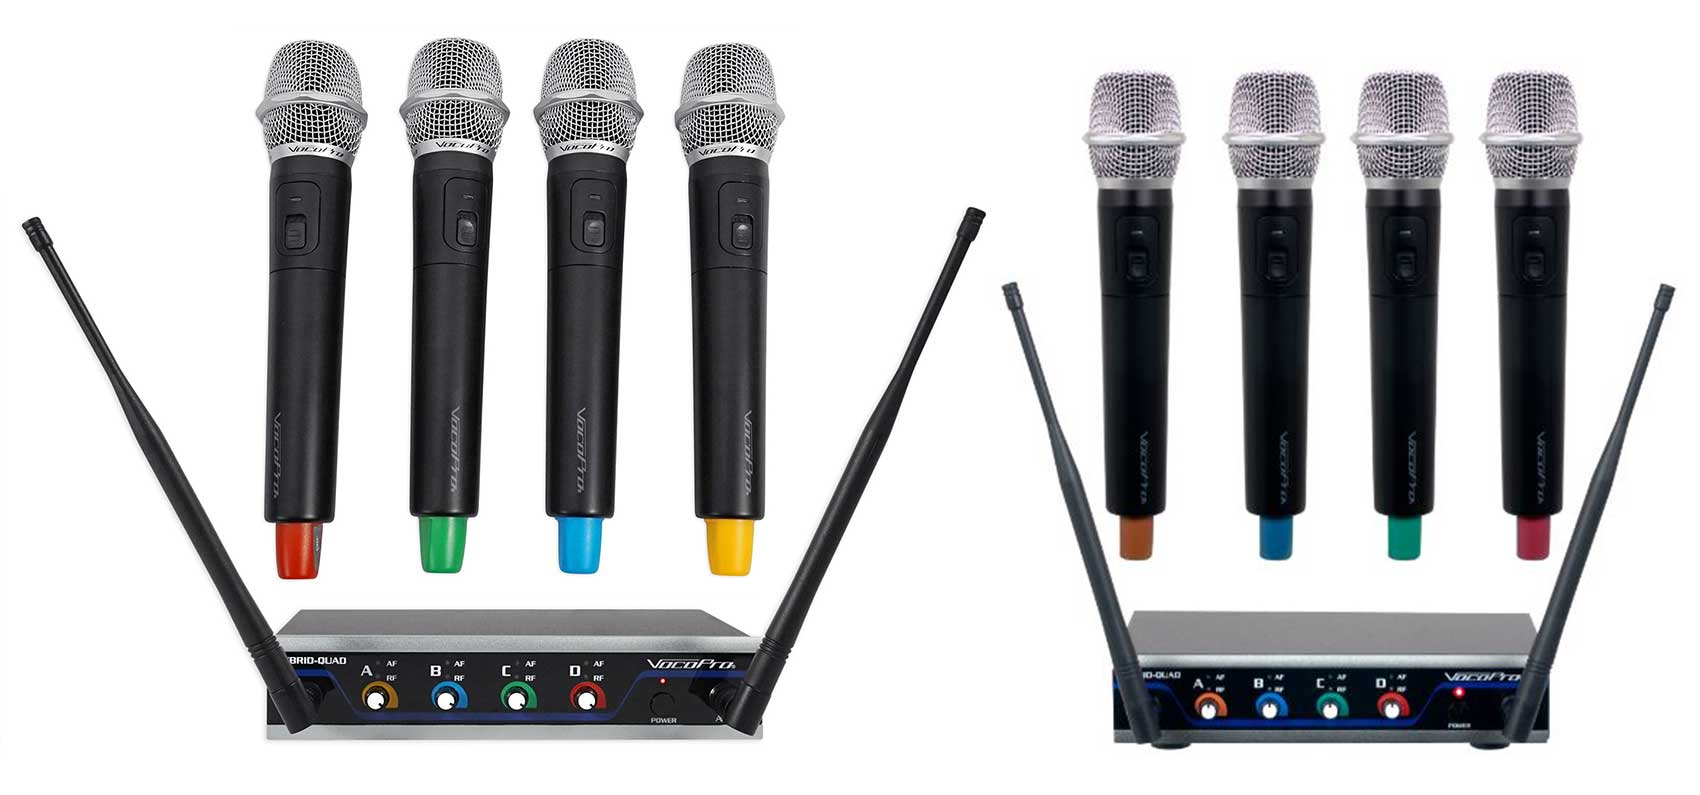 (2) VOCOPRO Four-Channel UHF Digital Wireless Handheld Microphone Mics Systems by VocoPro